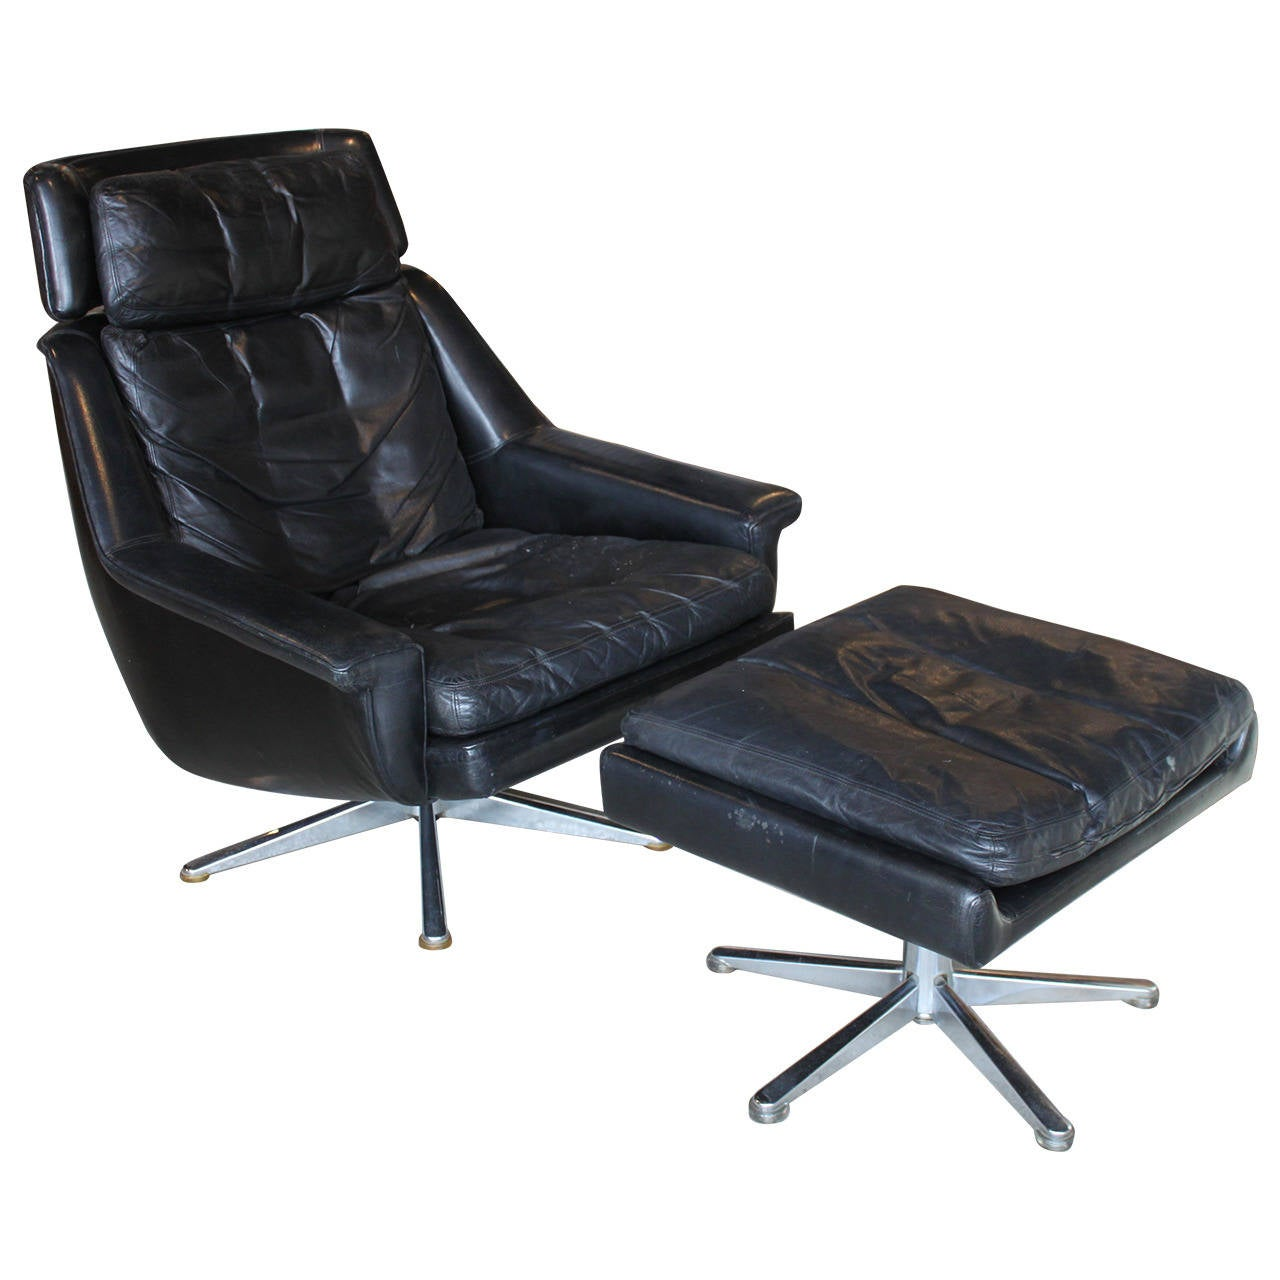 danish leather lounge chair and ottoman by esa for sale at stdibs - danish leather lounge chair and ottoman by esa